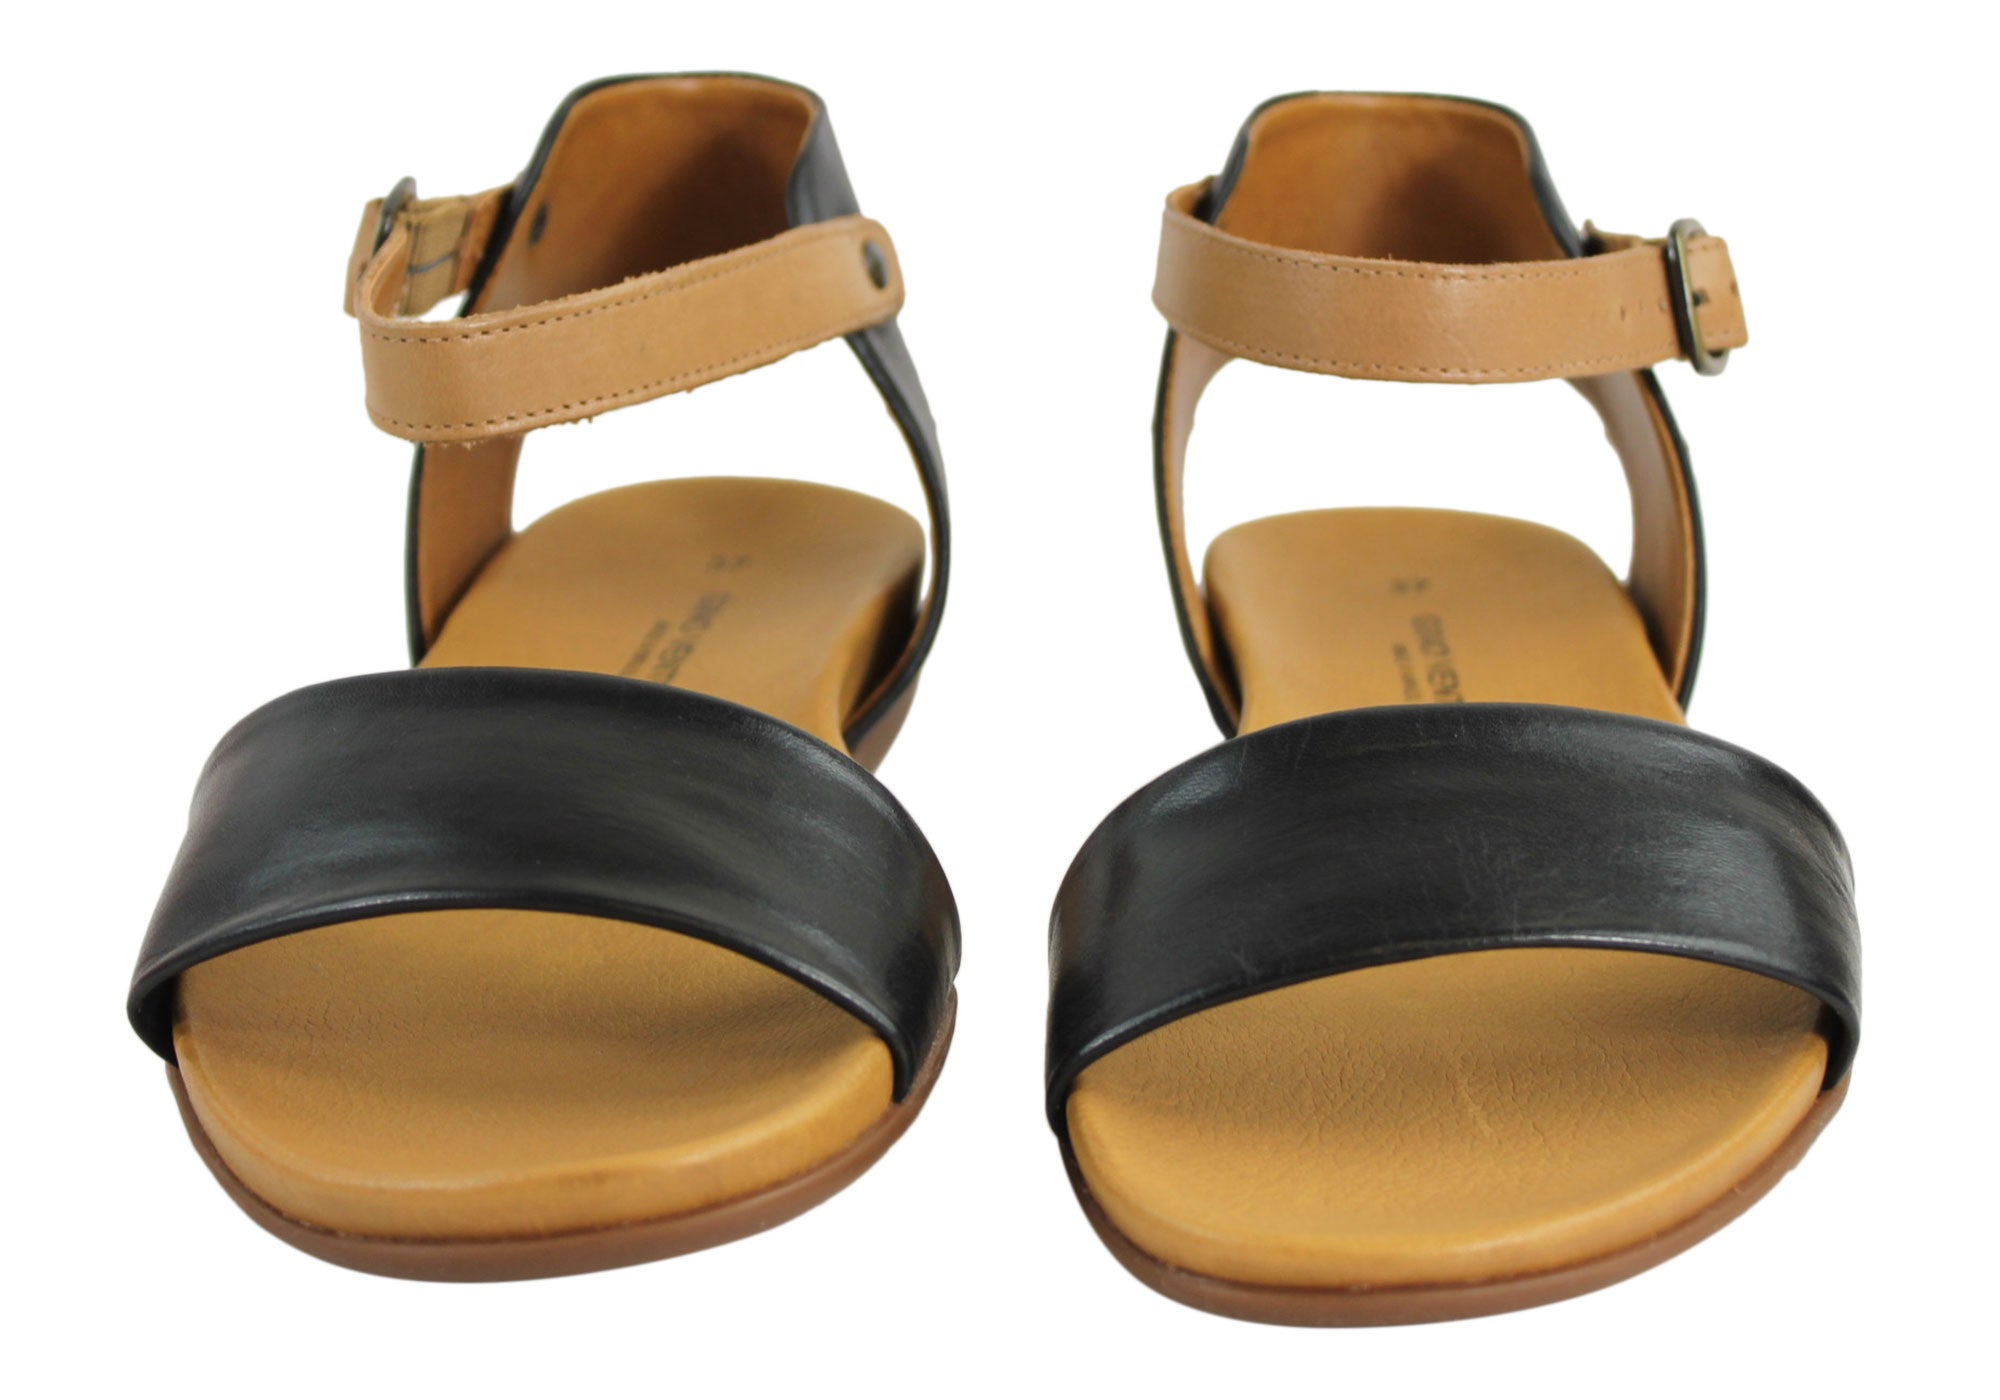 Gino Ventori Neptune Womens Leather Sandals Made In Brazil